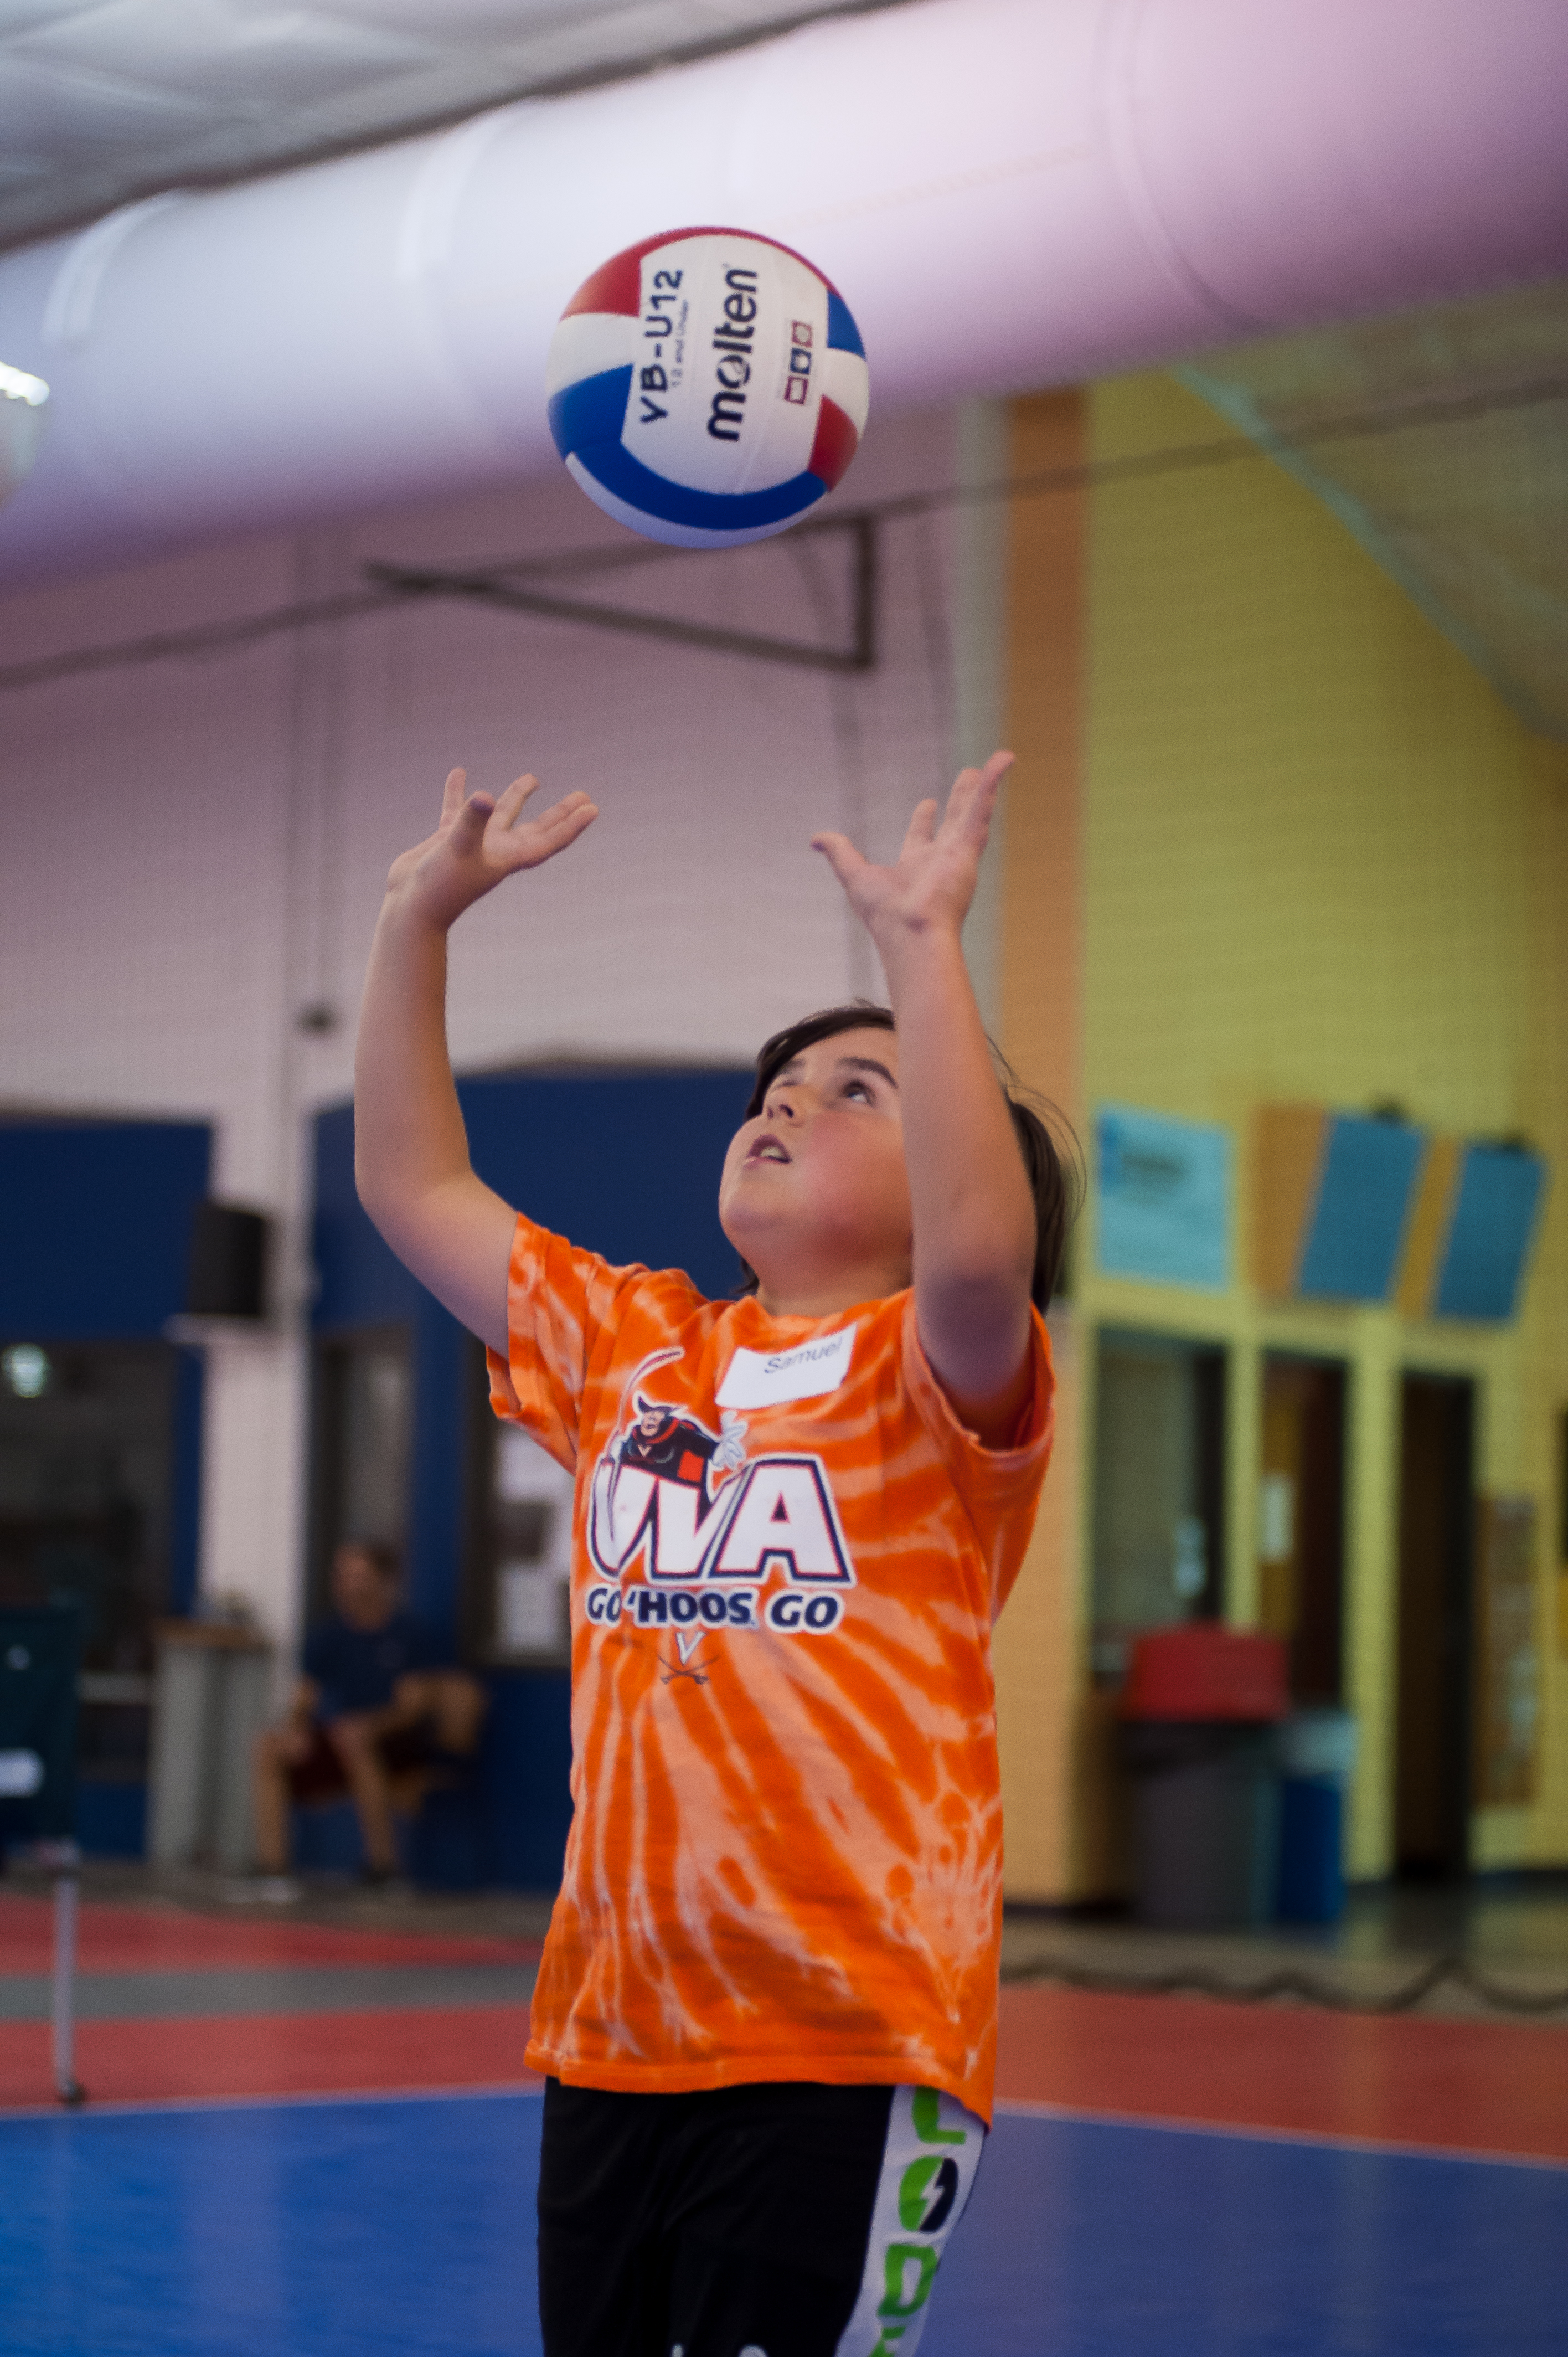 Jumpin Junior player setting the ball during kids volleyball practice